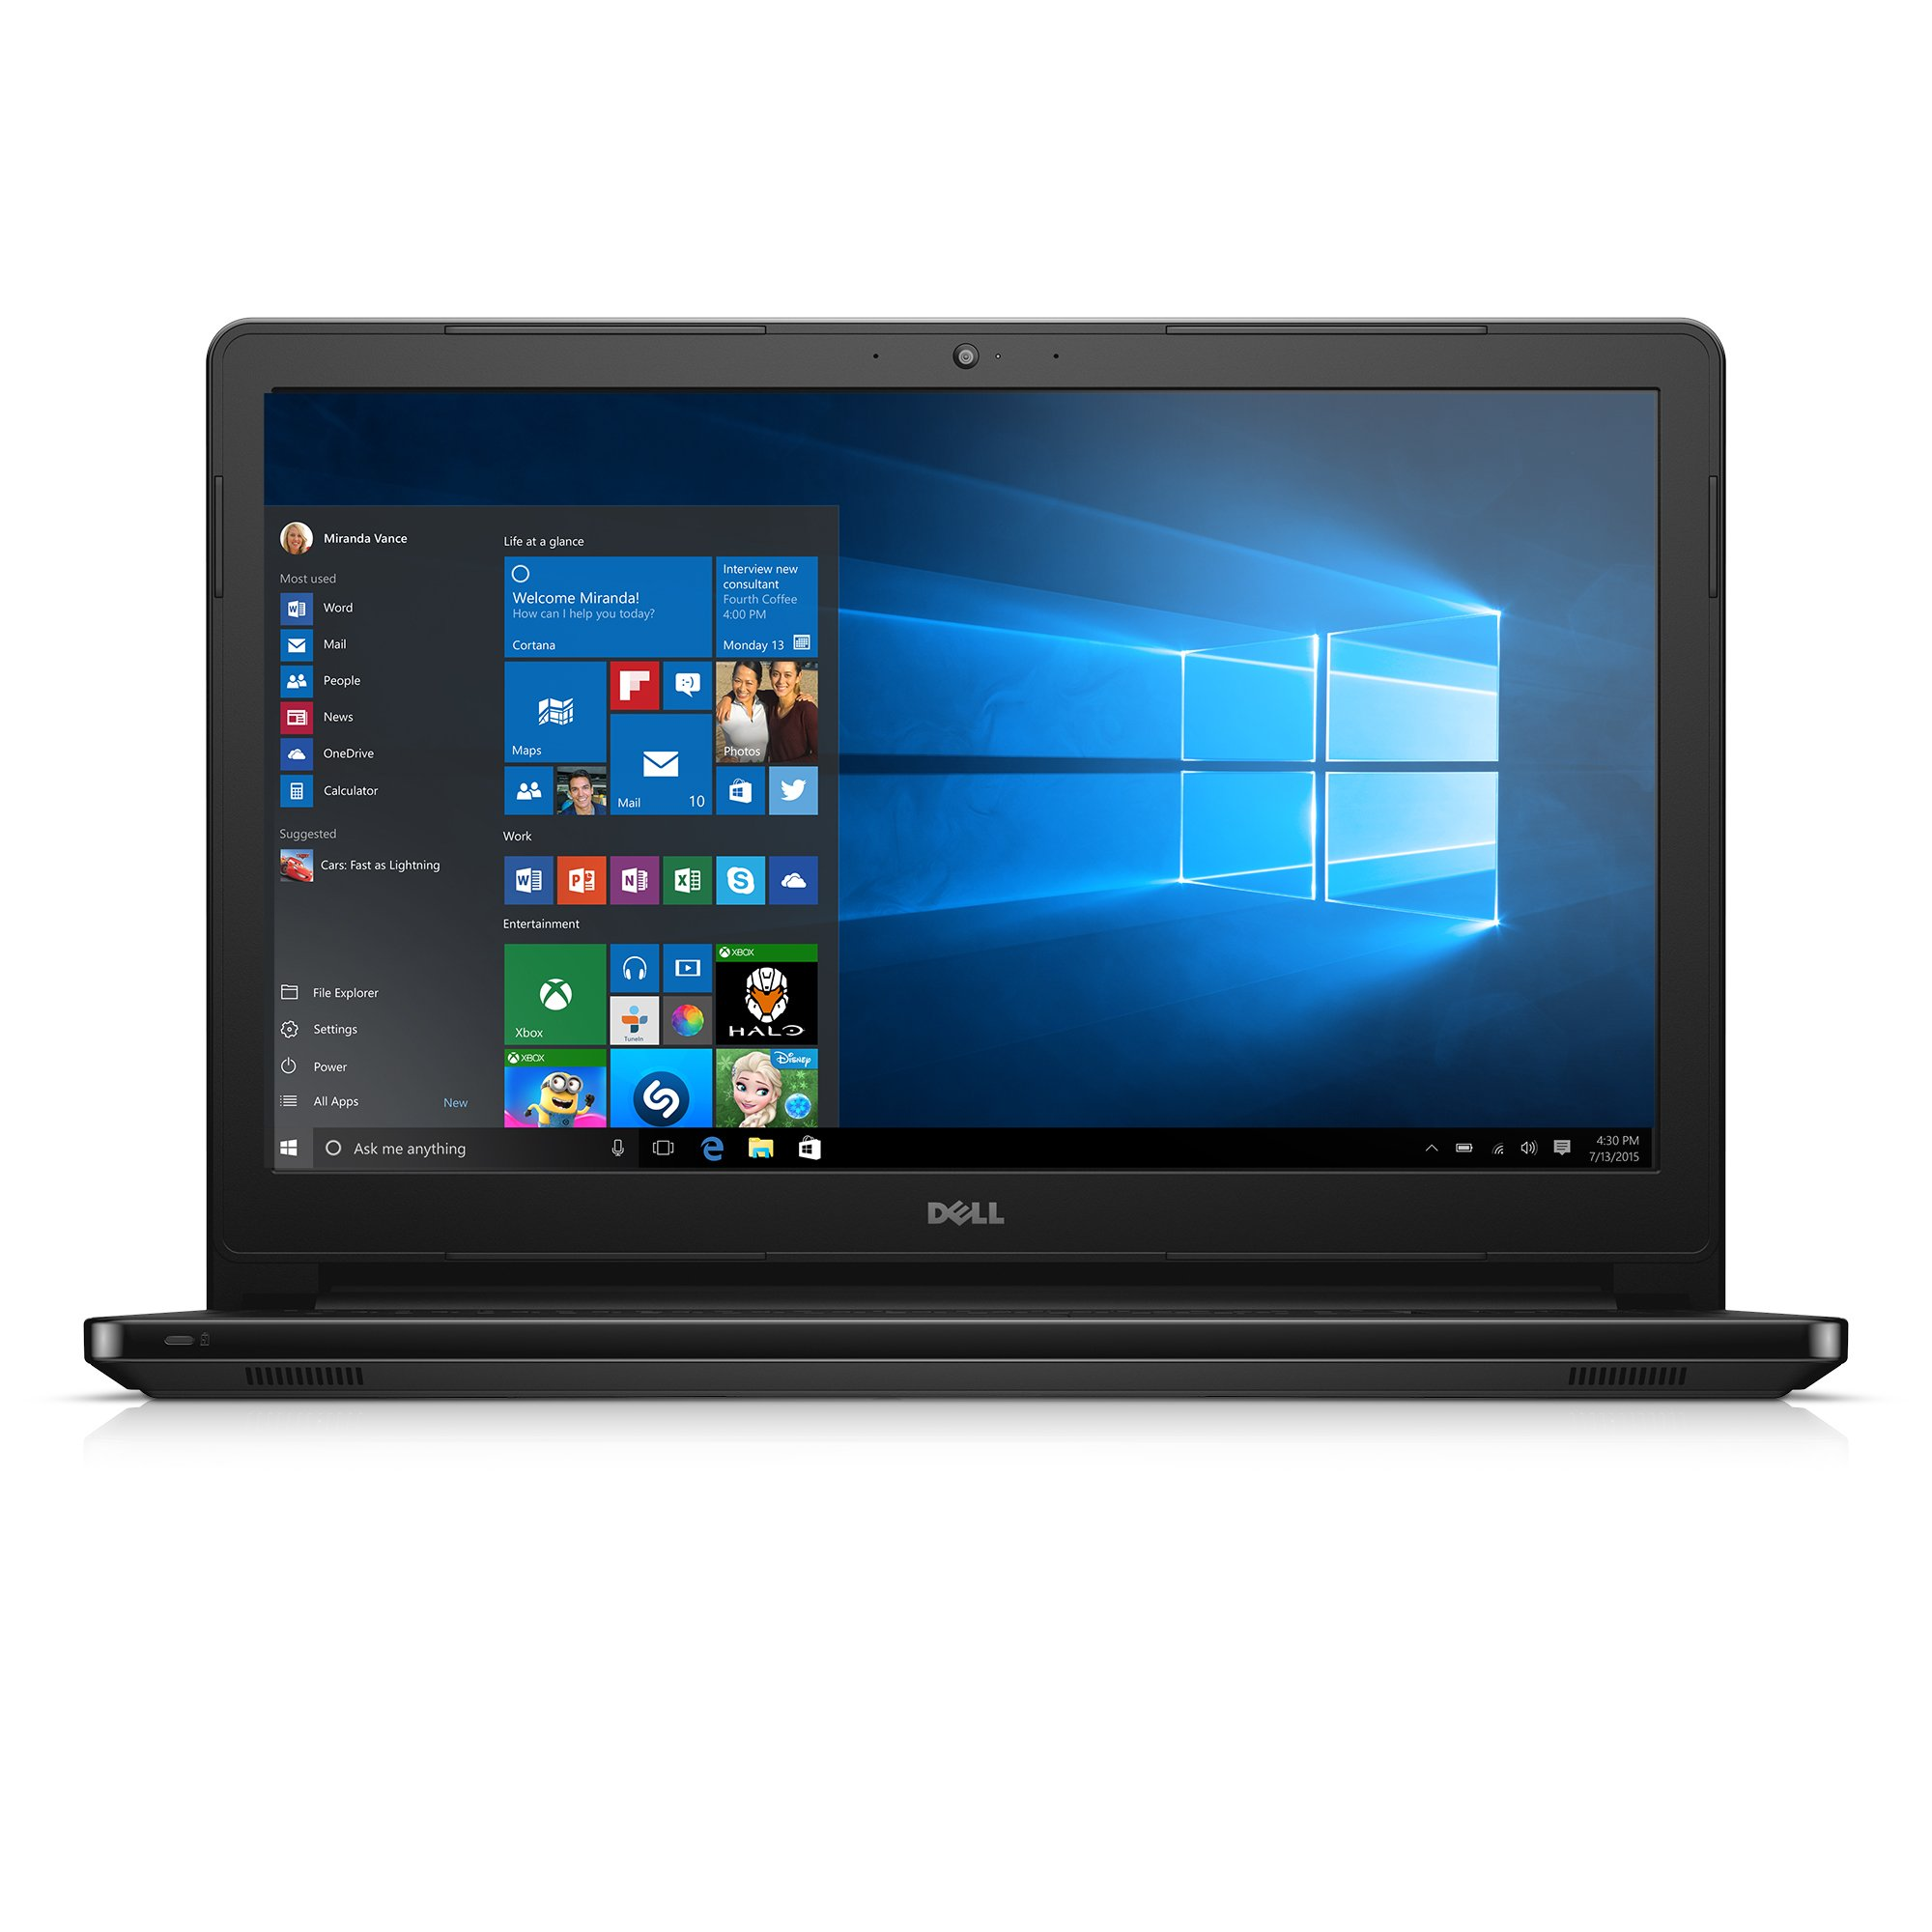 Dell Inspiron i5555-1428BLK 15.6 Inch Touchscreen Laptop (AMD A8, 6 GB RAM, 1 TB HDD, Black Gloss) by Dell